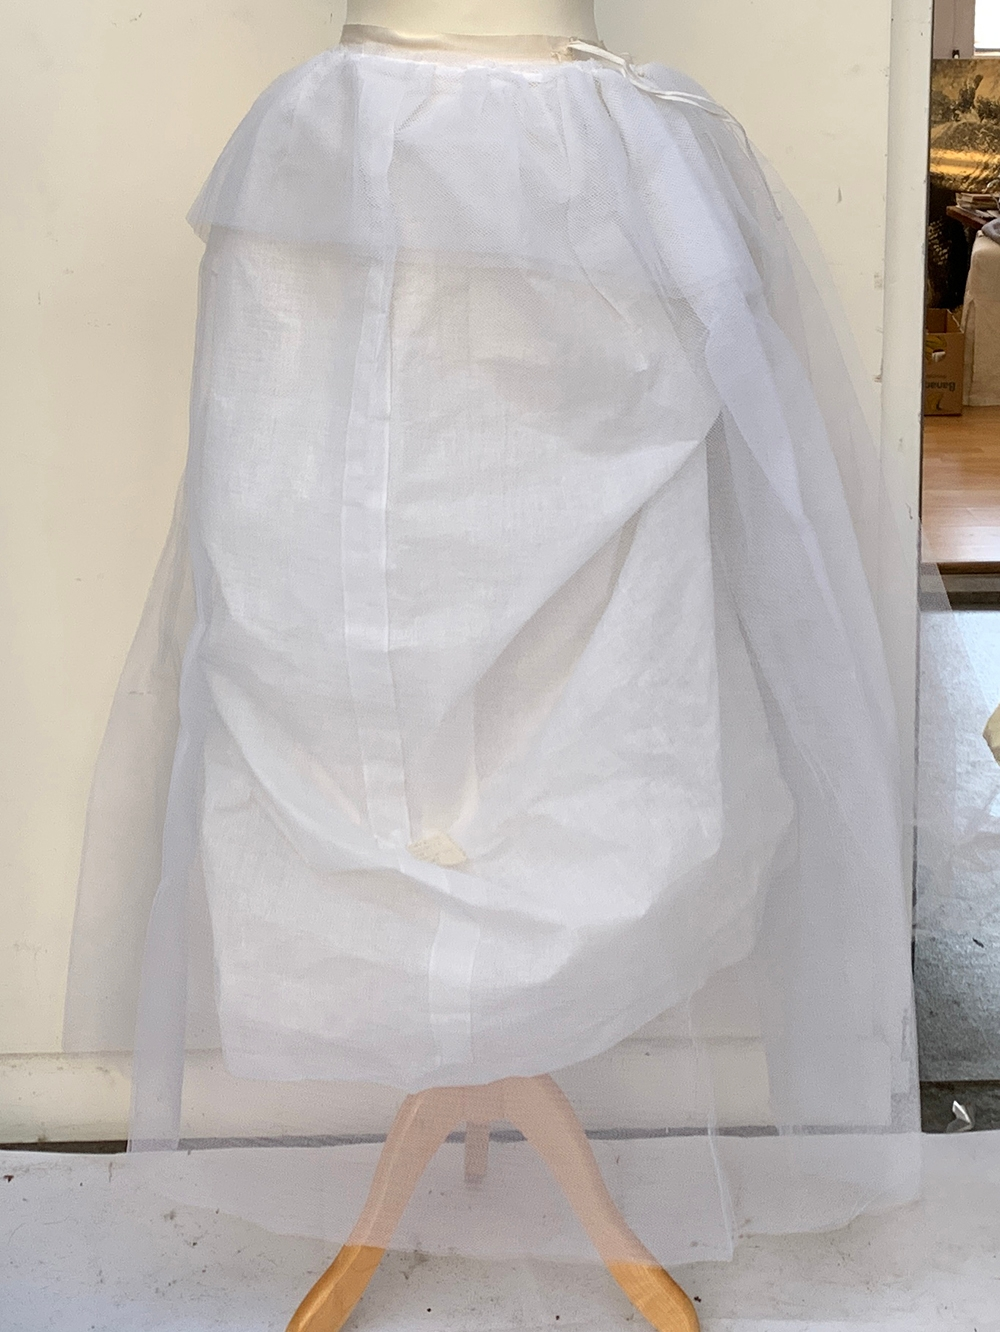 A vintage Lilywhites tennis skirt, together with an underskirt, hooped skirt, etc, in a large - Image 2 of 5